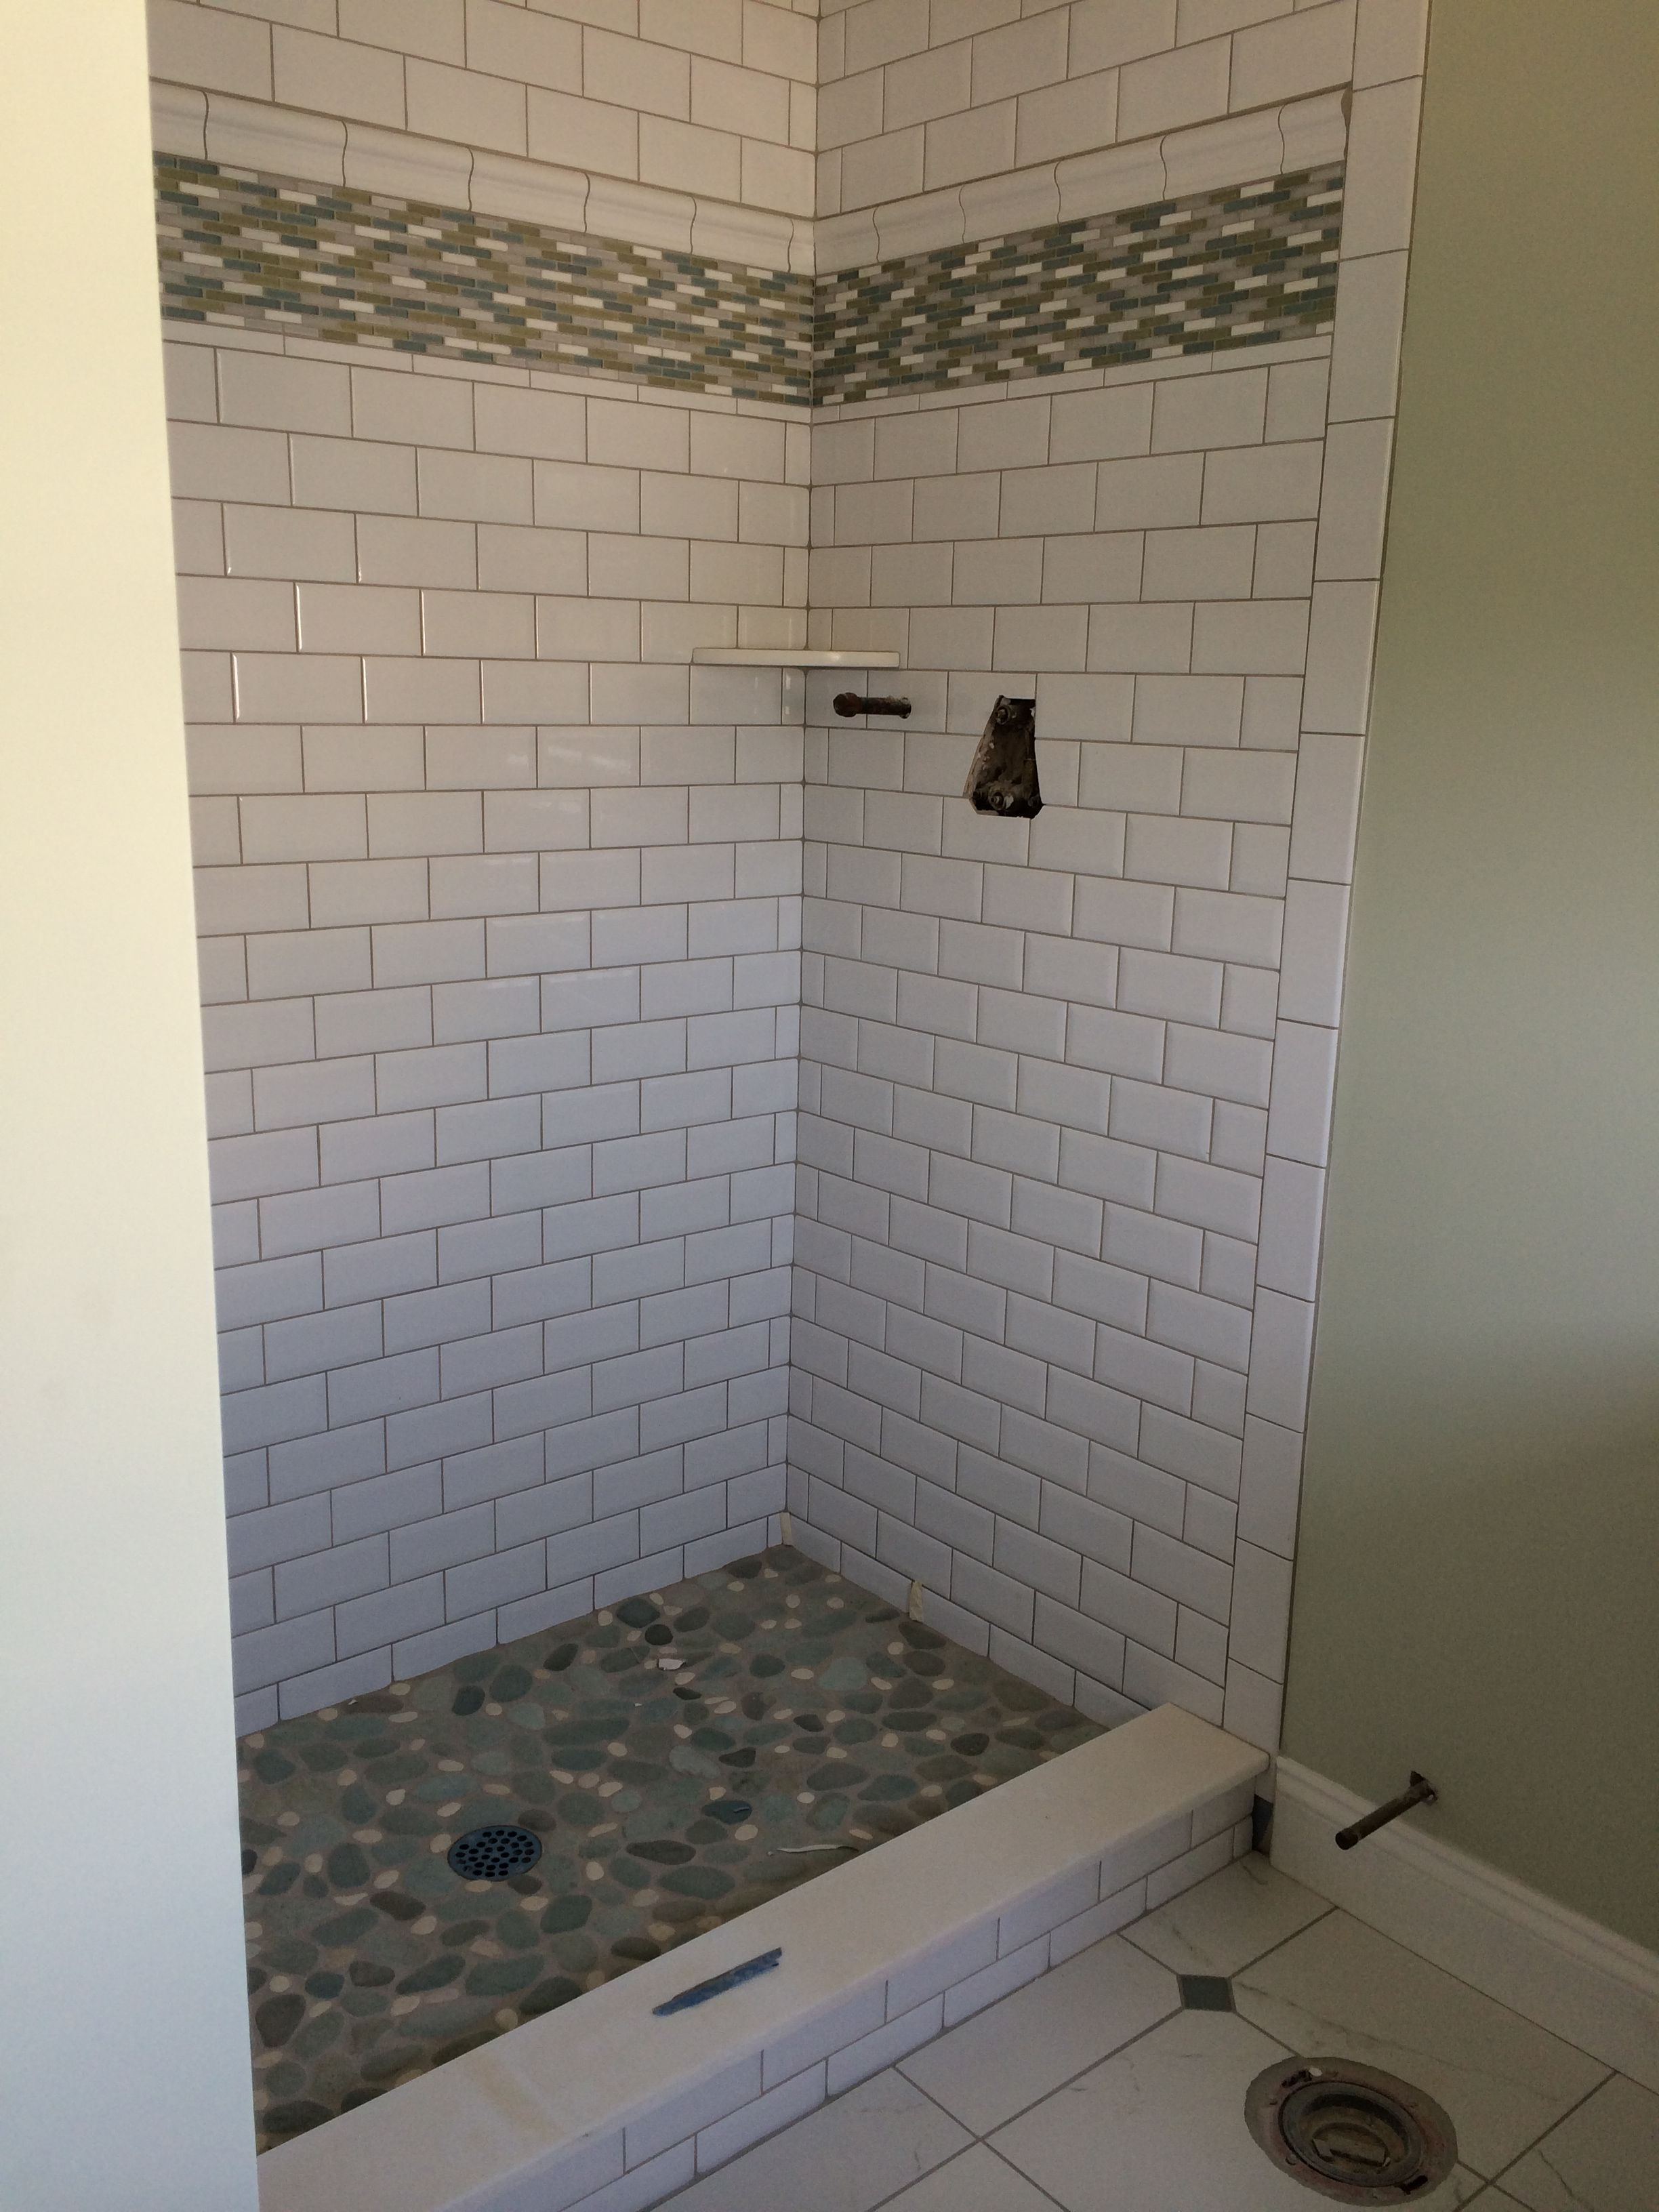 Subway tile w silverado grout glass tile horizontal listello subway tile w silverado grout glass tile horizontal listello river rock shower floor dailygadgetfo Choice Image